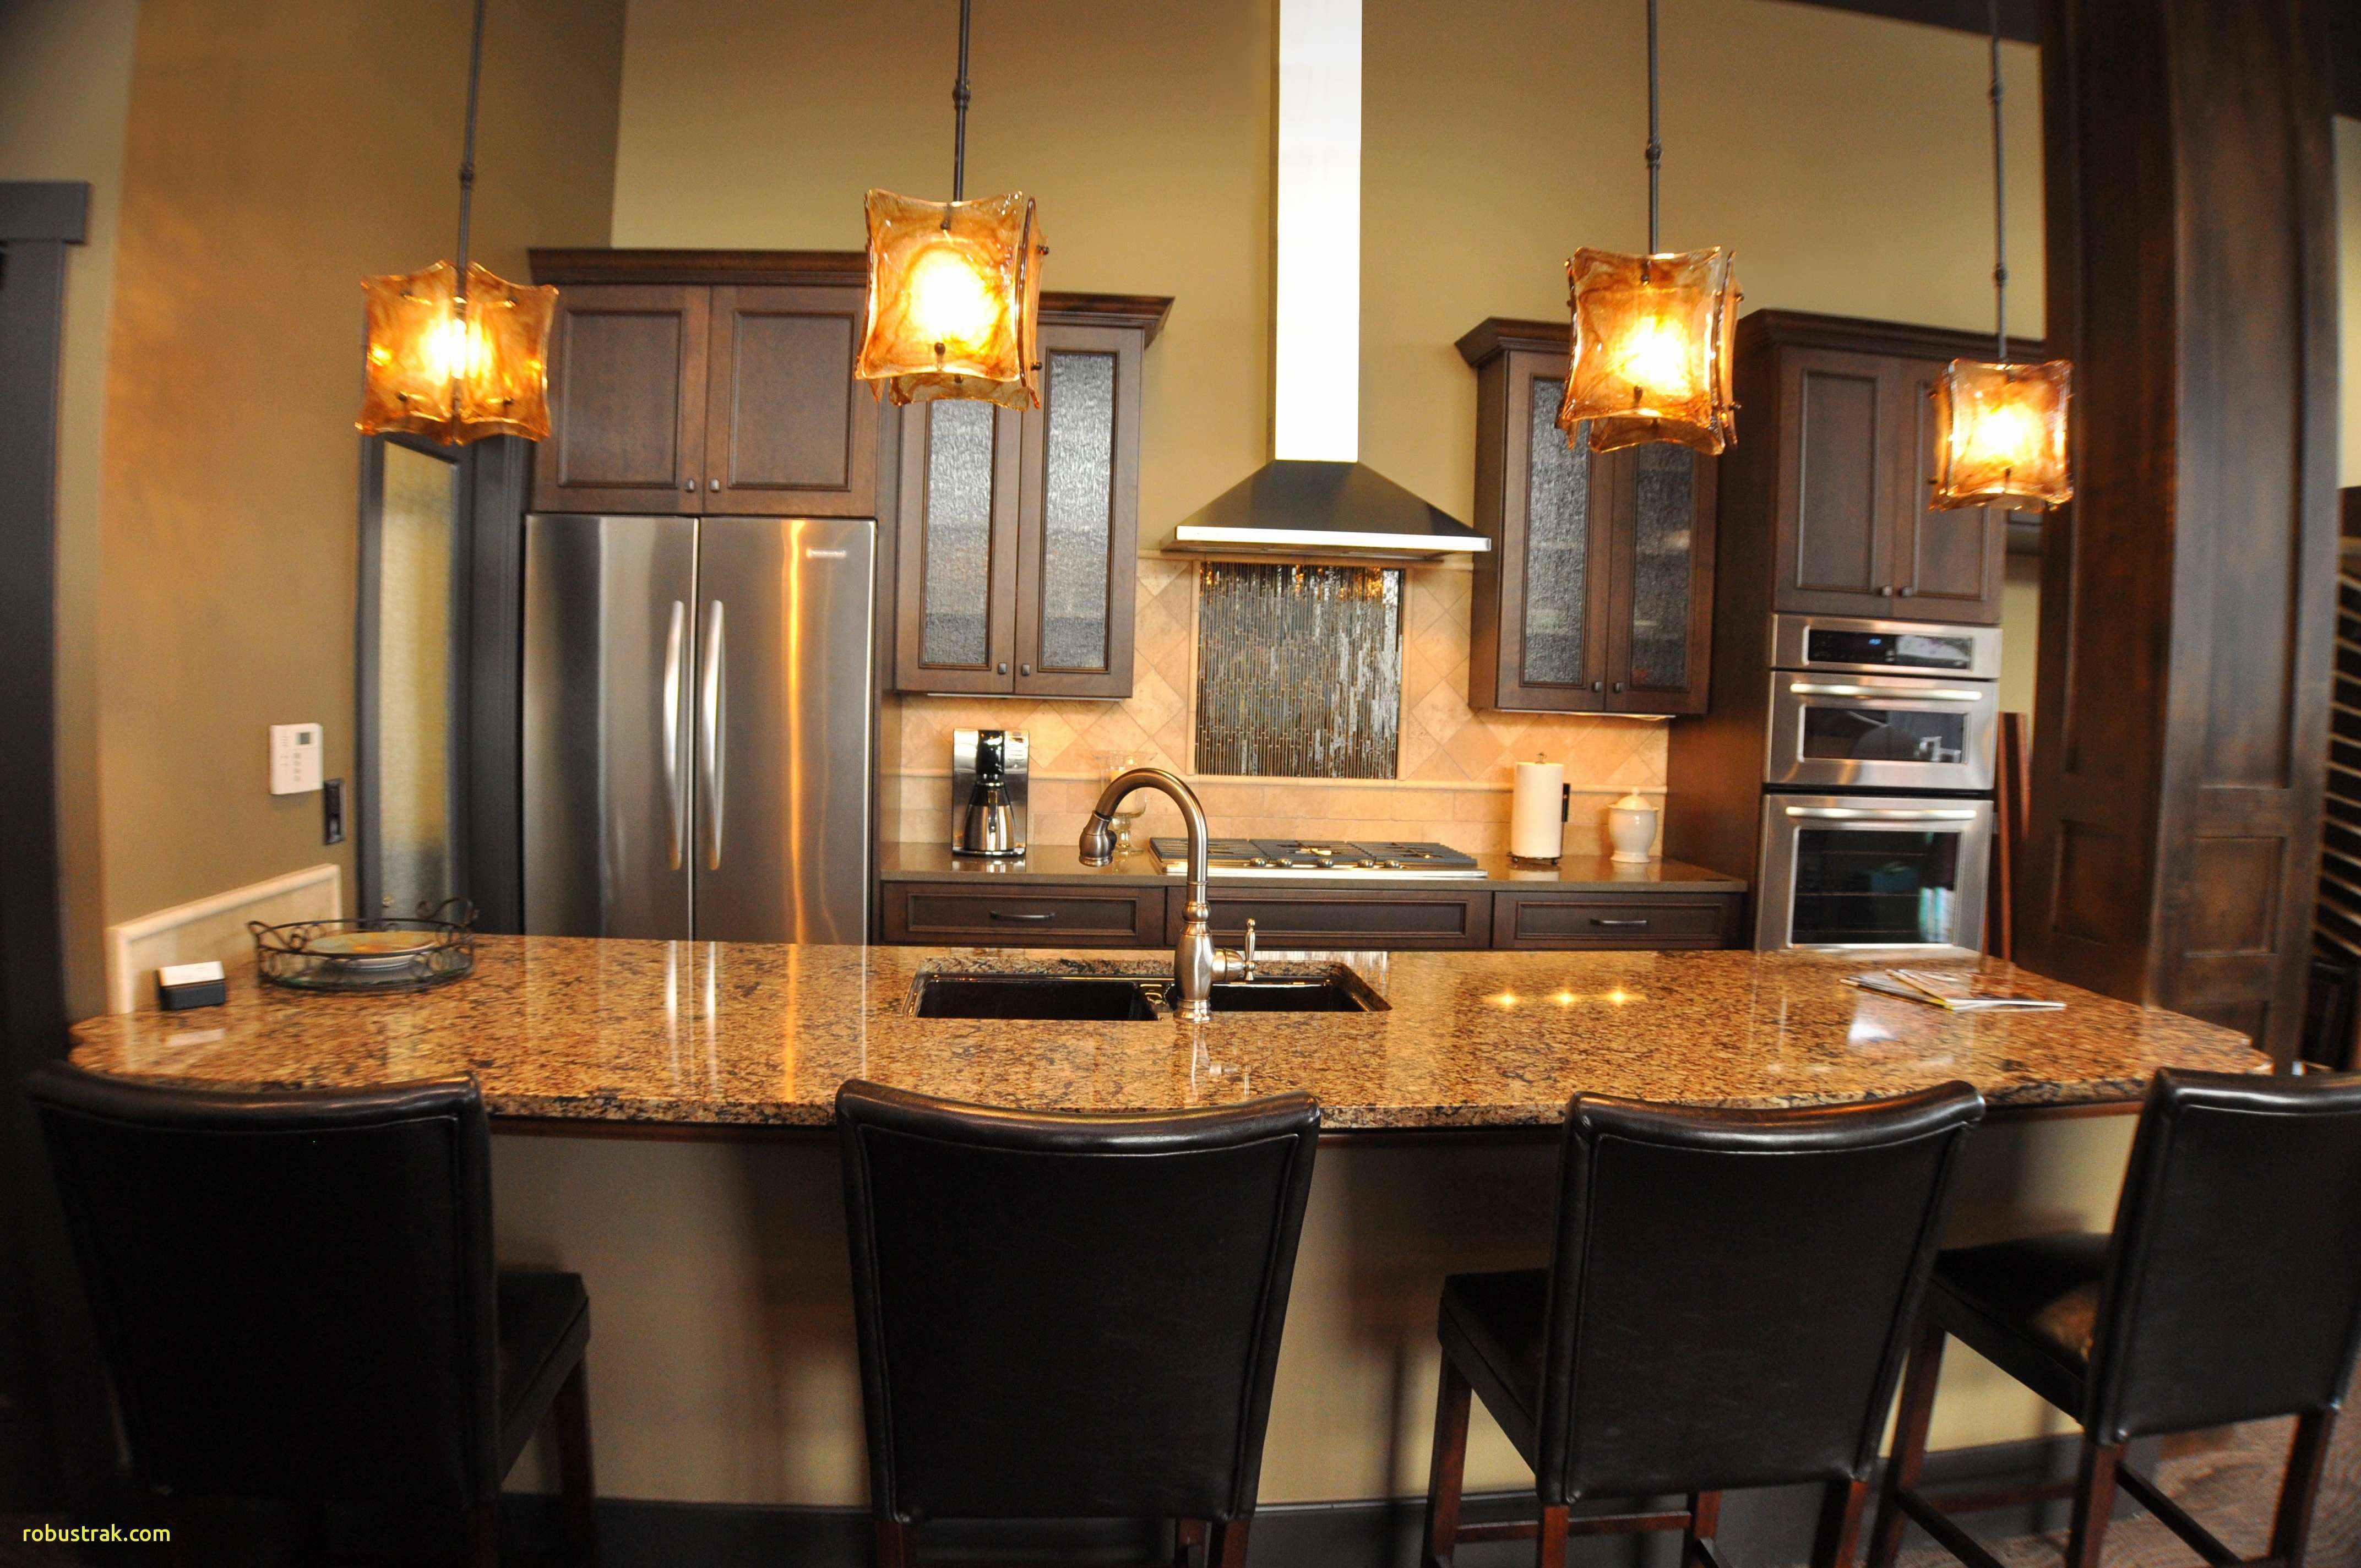 stunning kitchen island with sink and dishwasher ideas kitchen island countertop kitchen on kitchen island ideas cheap id=38048